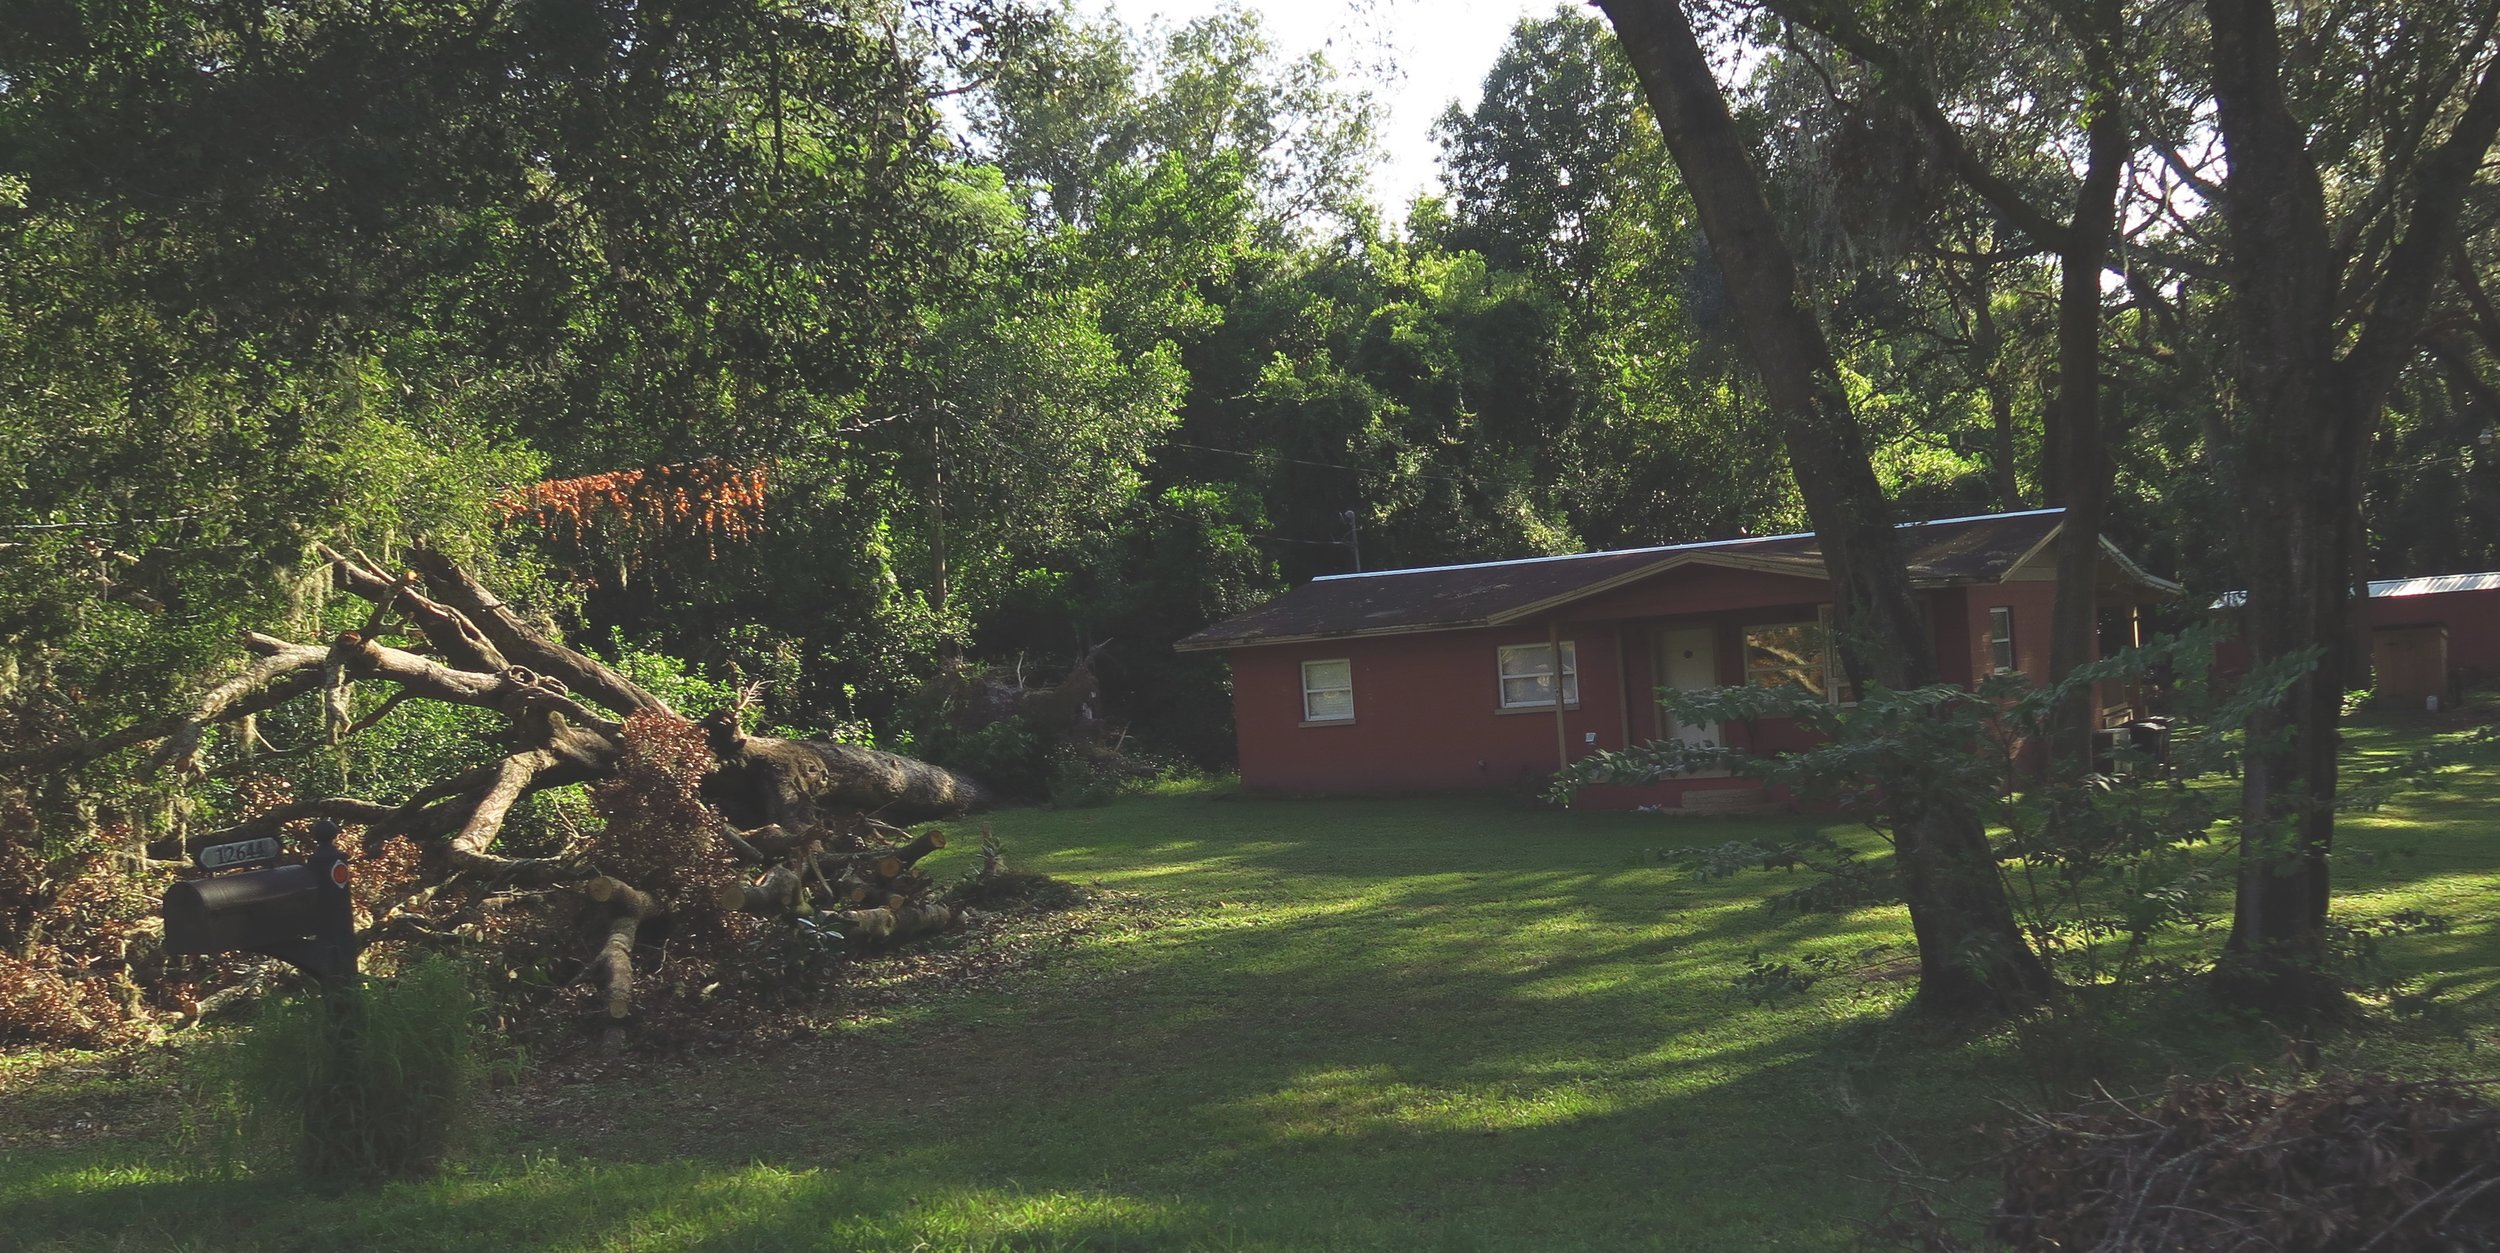 This tree fell away from the neighbor's house. So thankful!